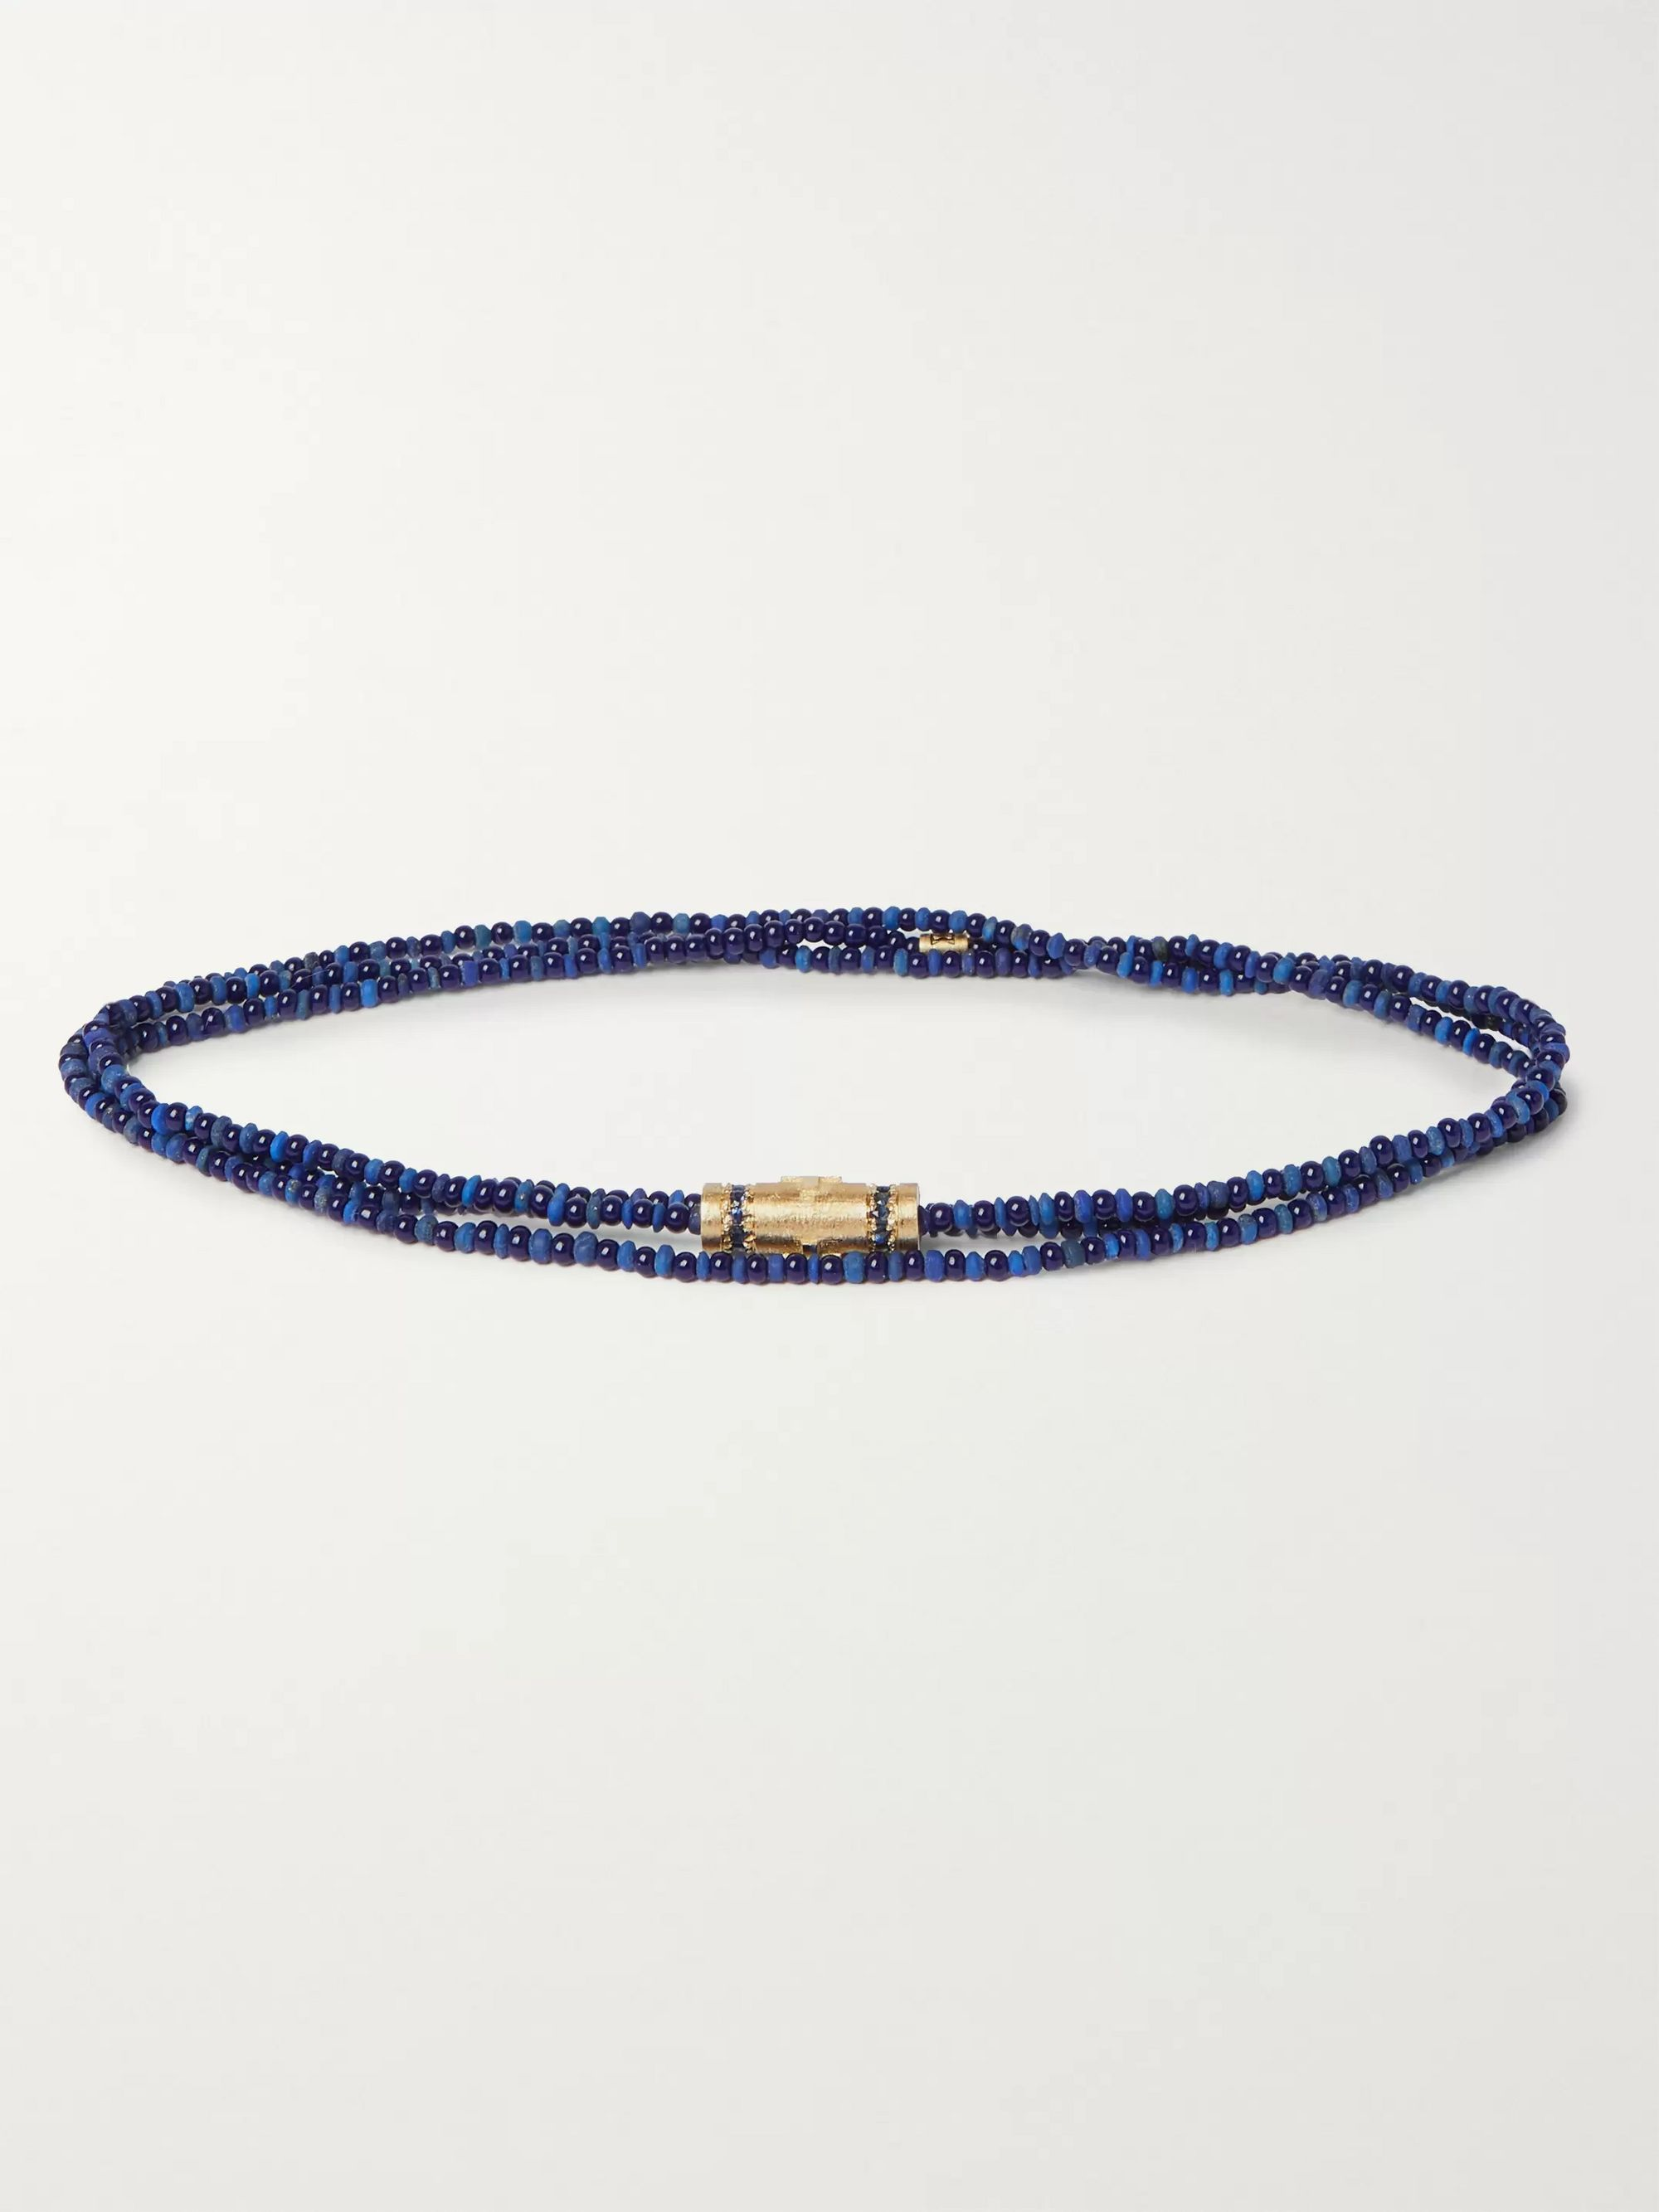 Luis Morais Gold, Sapphire and Bead Necklace